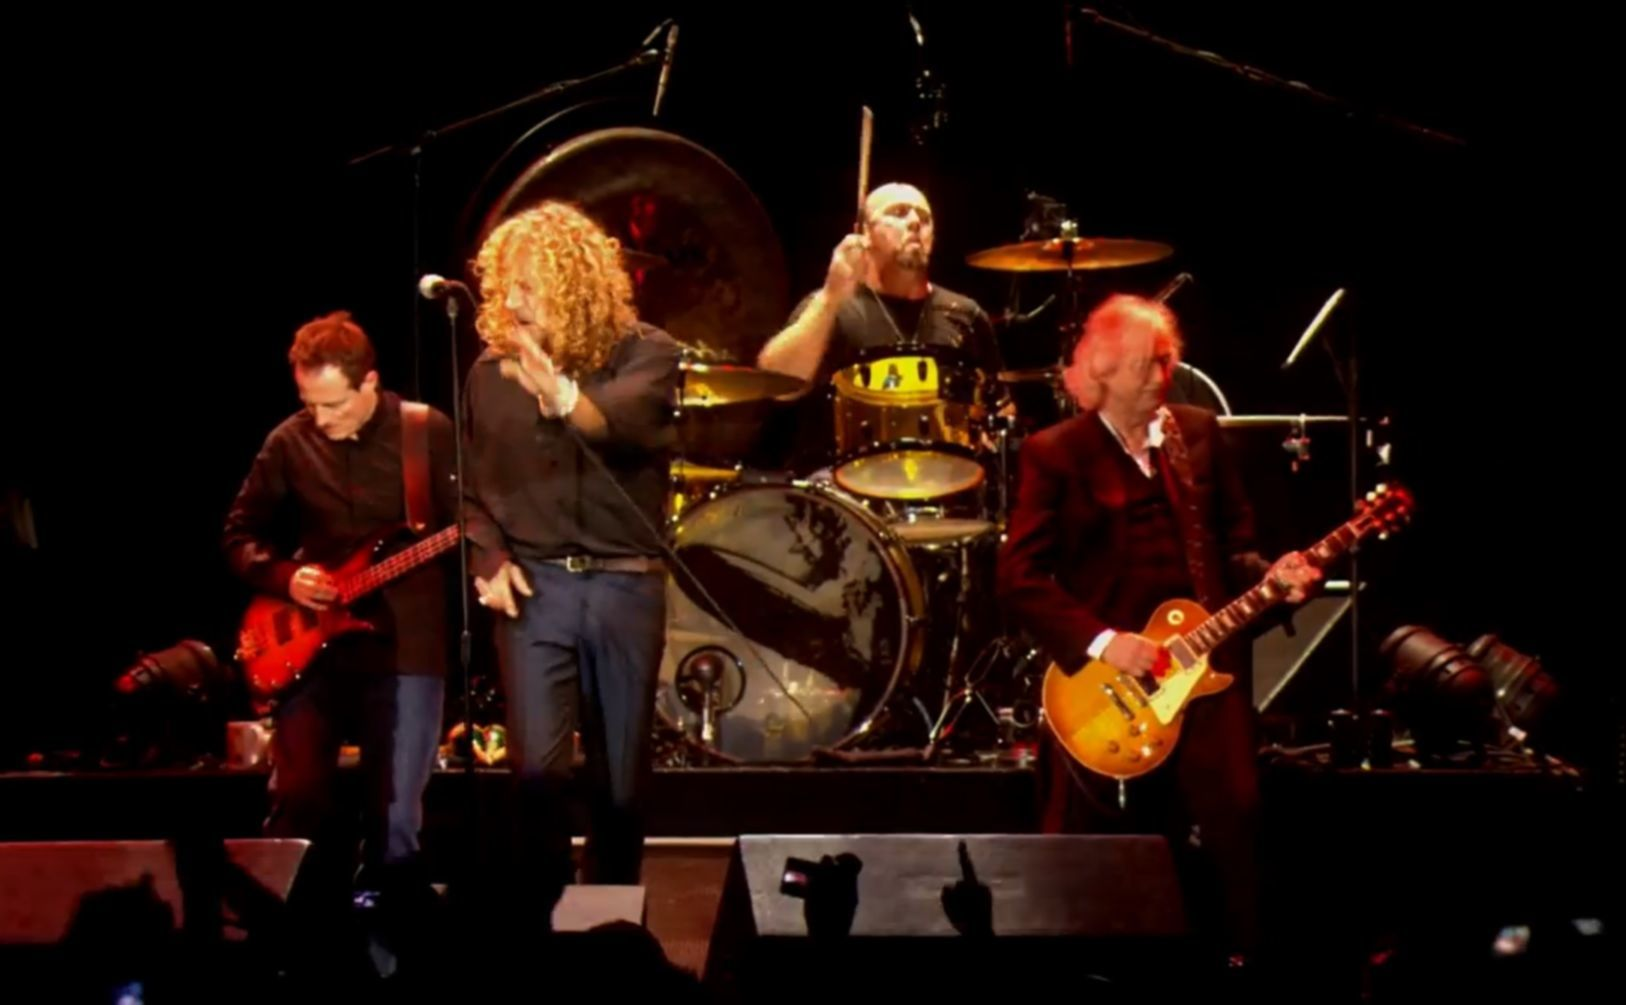 led zeppelin video still